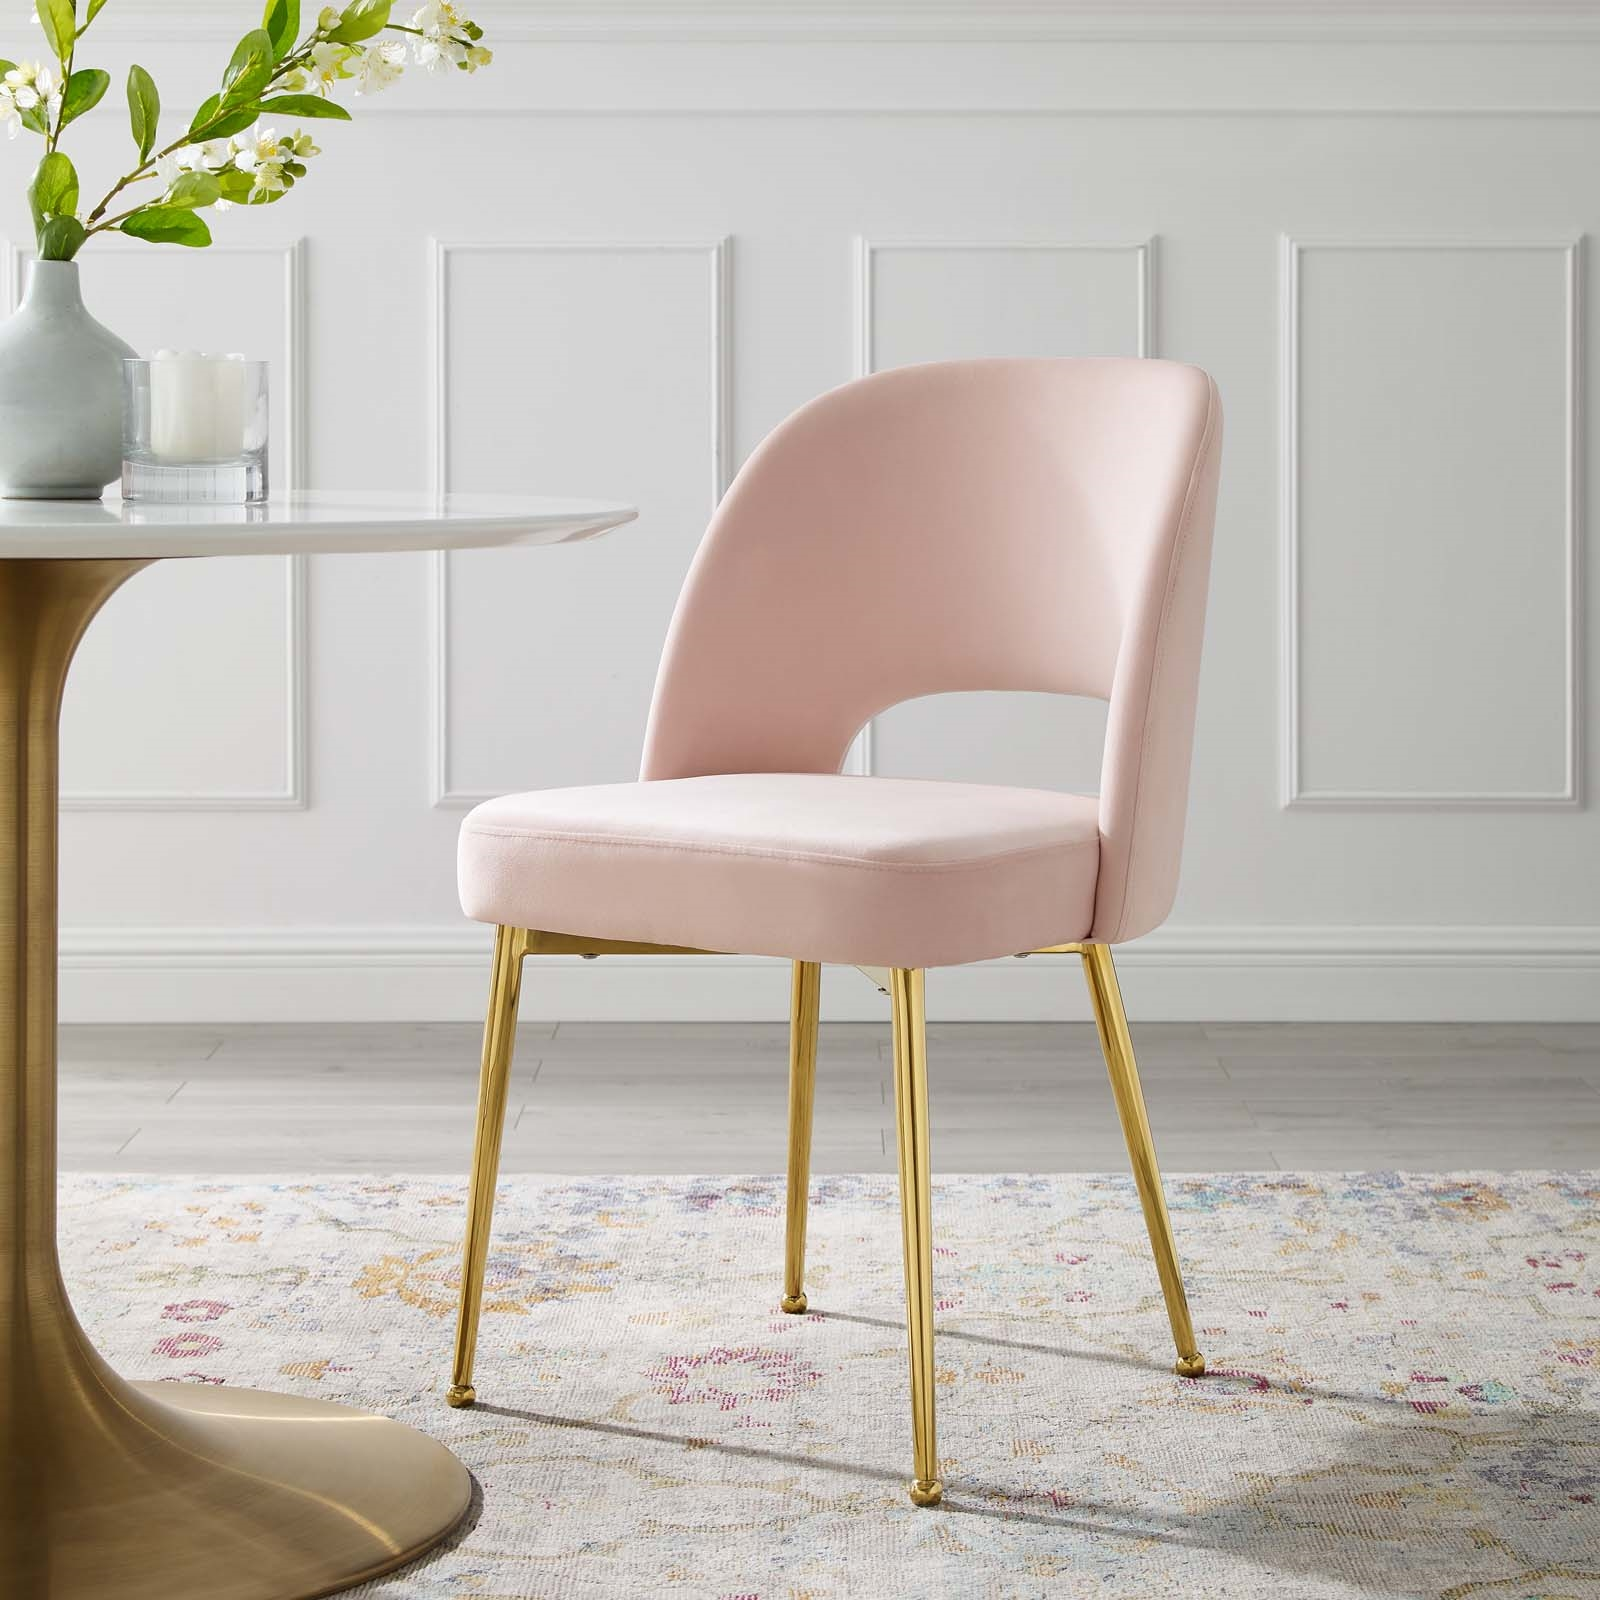 Rouse Dining Room Side Chair in Pink